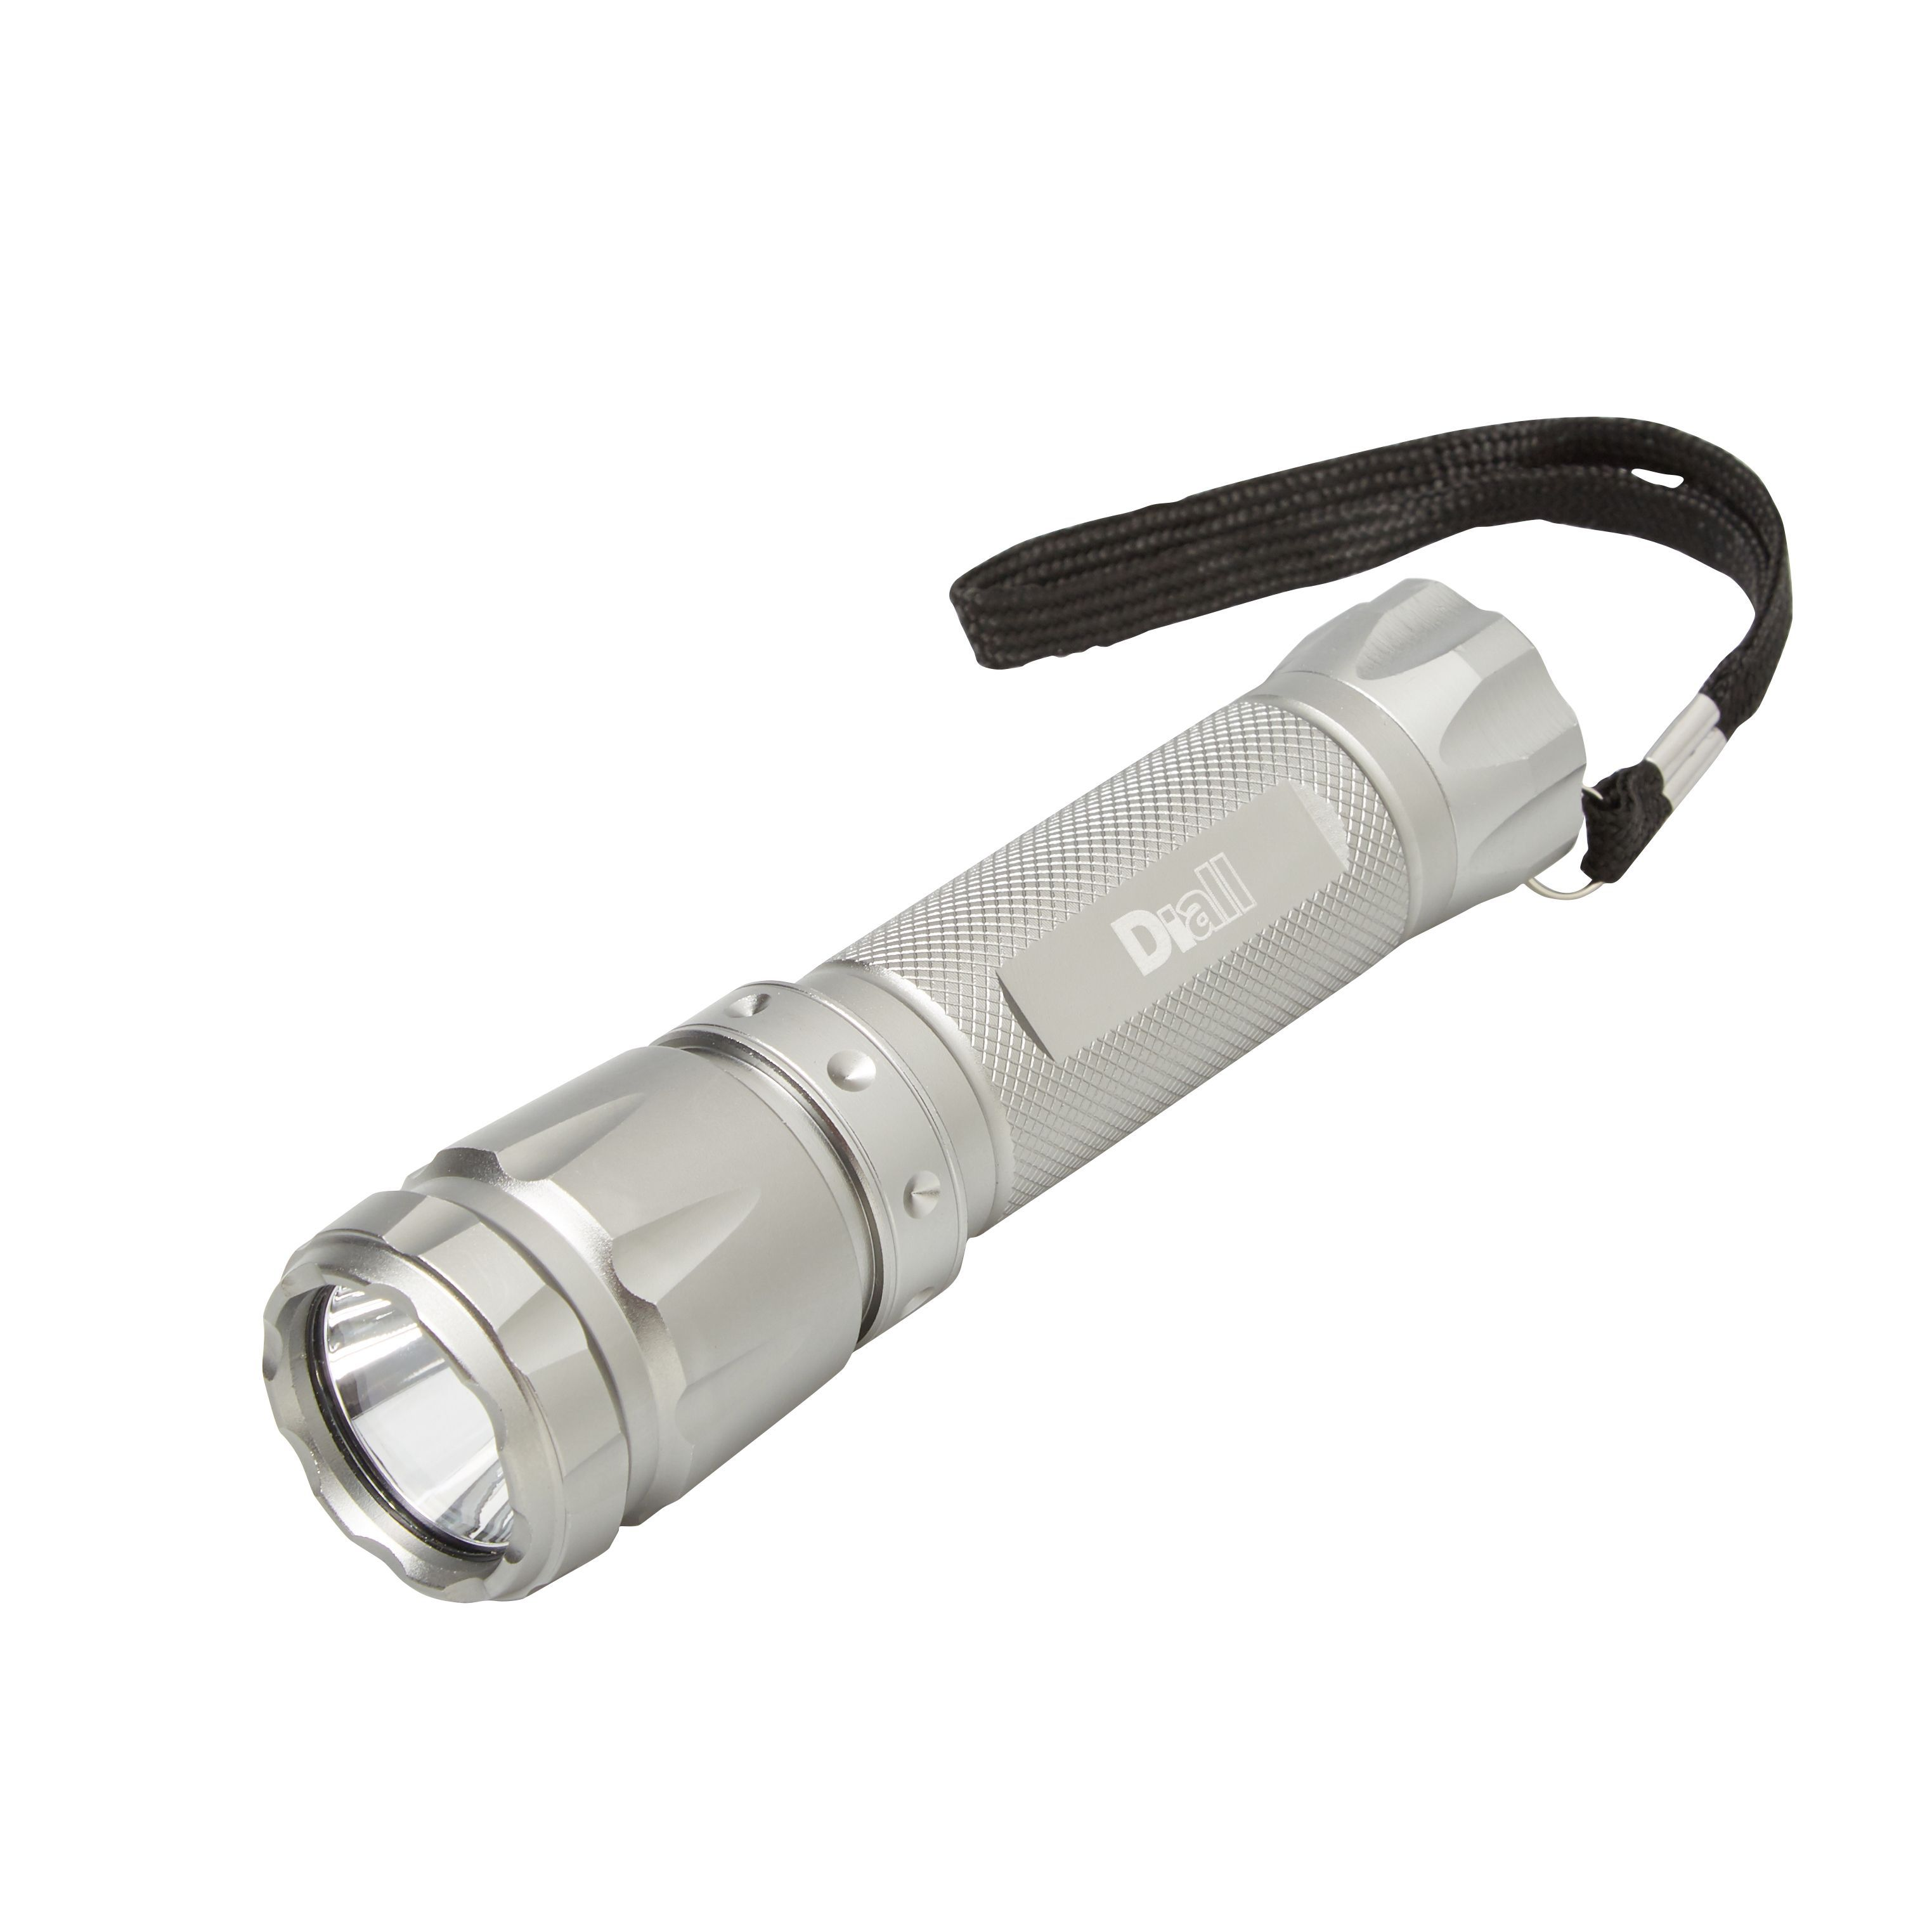 Diall 130lm Aluminium Led Silver Torch Departments Diy